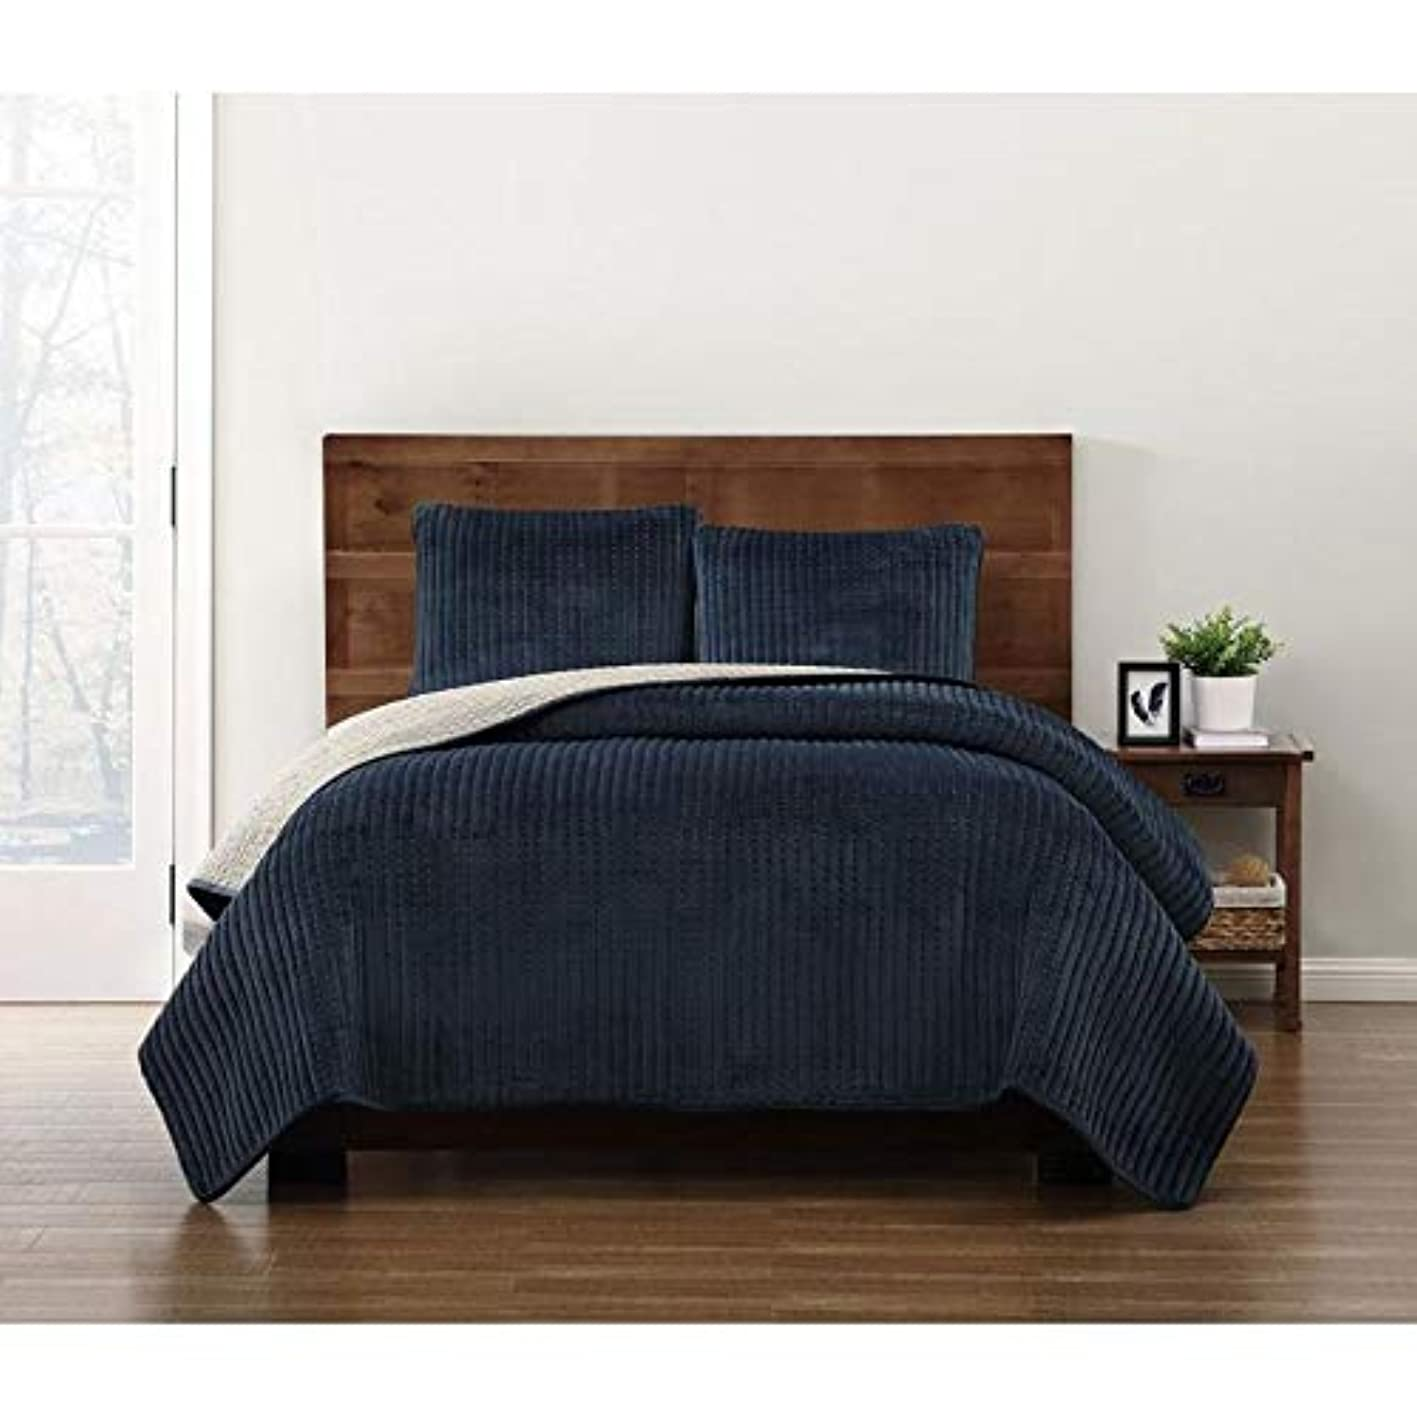 HNU 3 Piece Modern Crystal Face Pick Stitch Velvet Quilt Set Designer Style Solid Color Pattern Plush Navy King Bedding Set Outstanding Warmth Fashionable Bedroom Decor Amazingly Soft Pleated Finish cqdhoqkenqb334